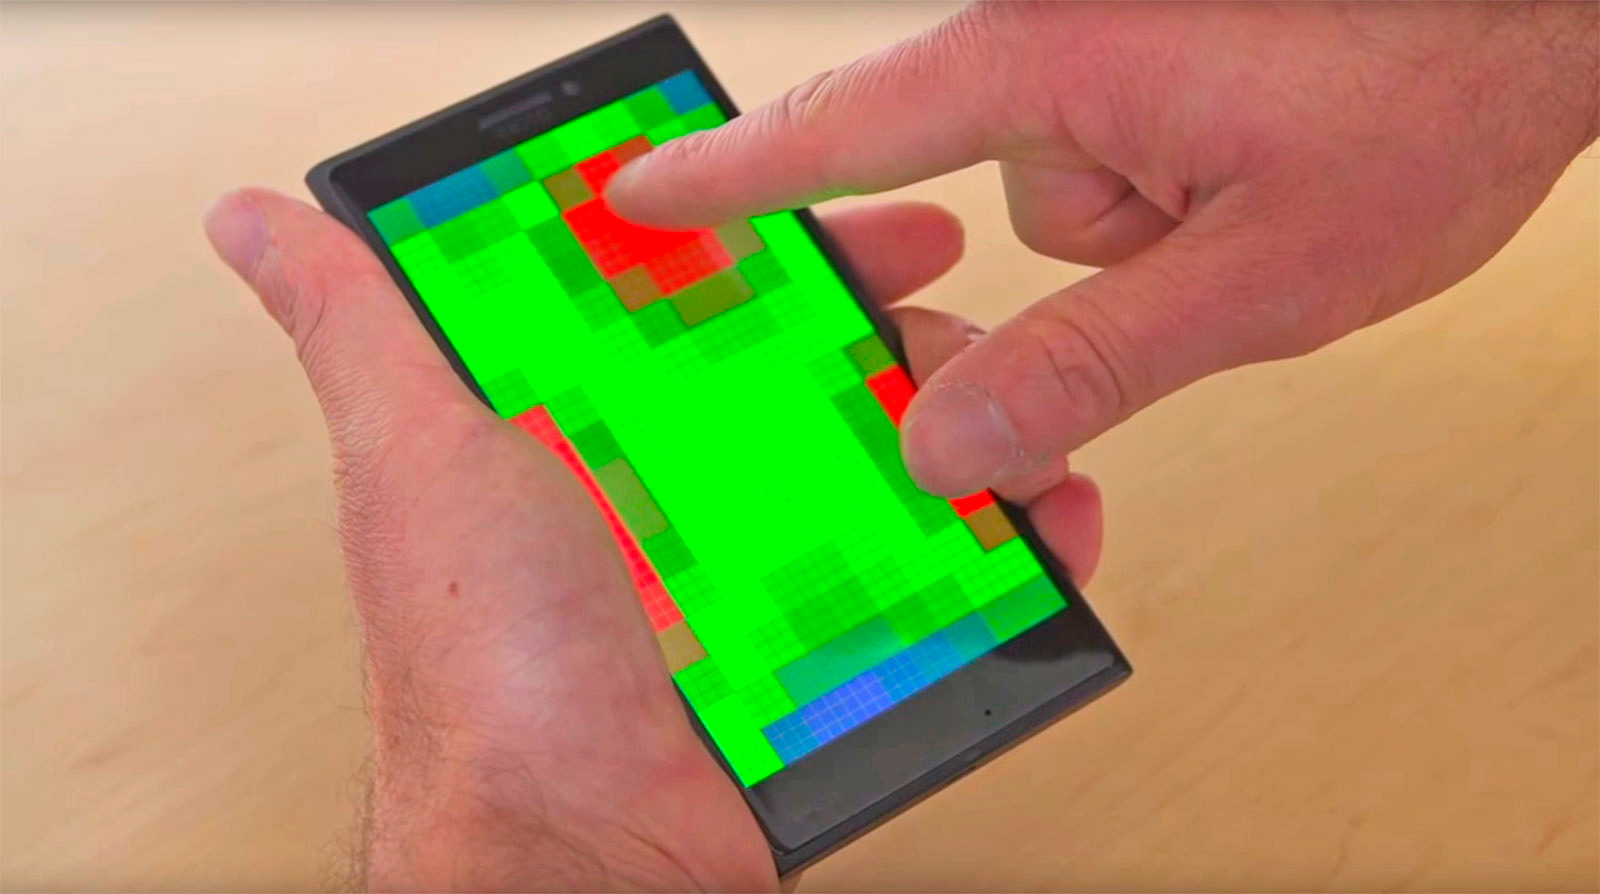 Microsoft Pre-Touch Sensing for Mobile Interaction